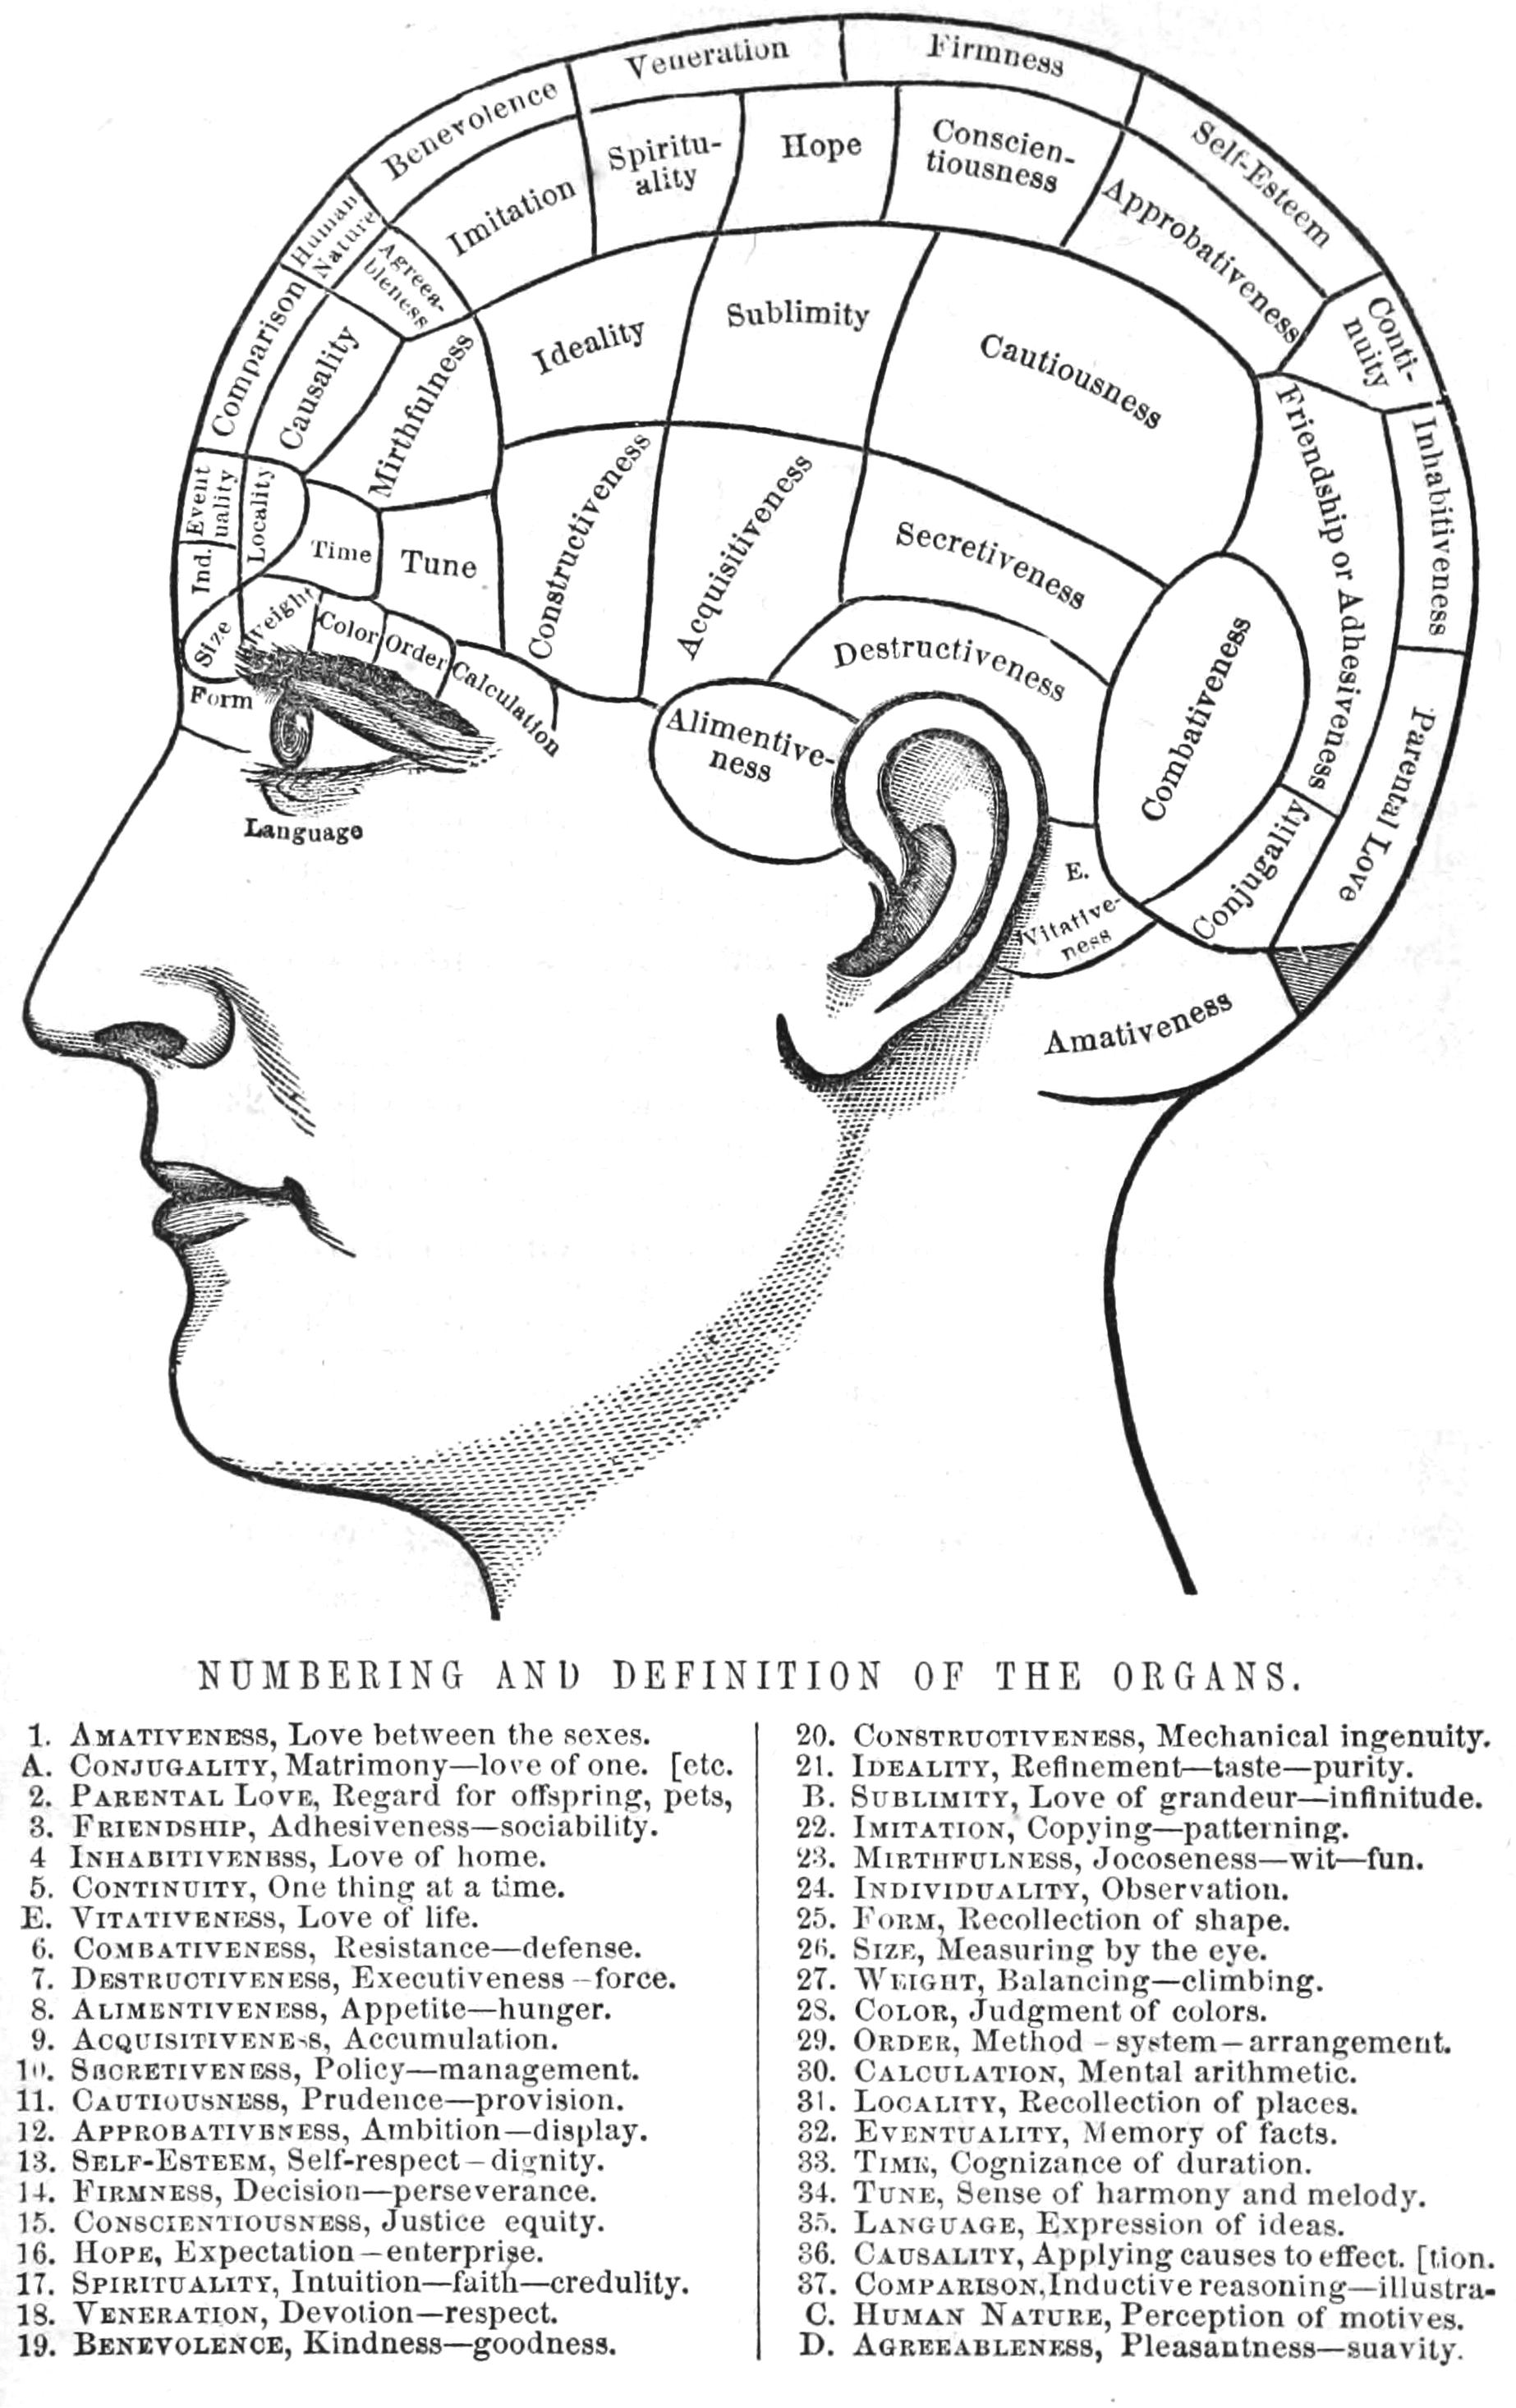 File Phrenology Numbering And Definition Of The Organs